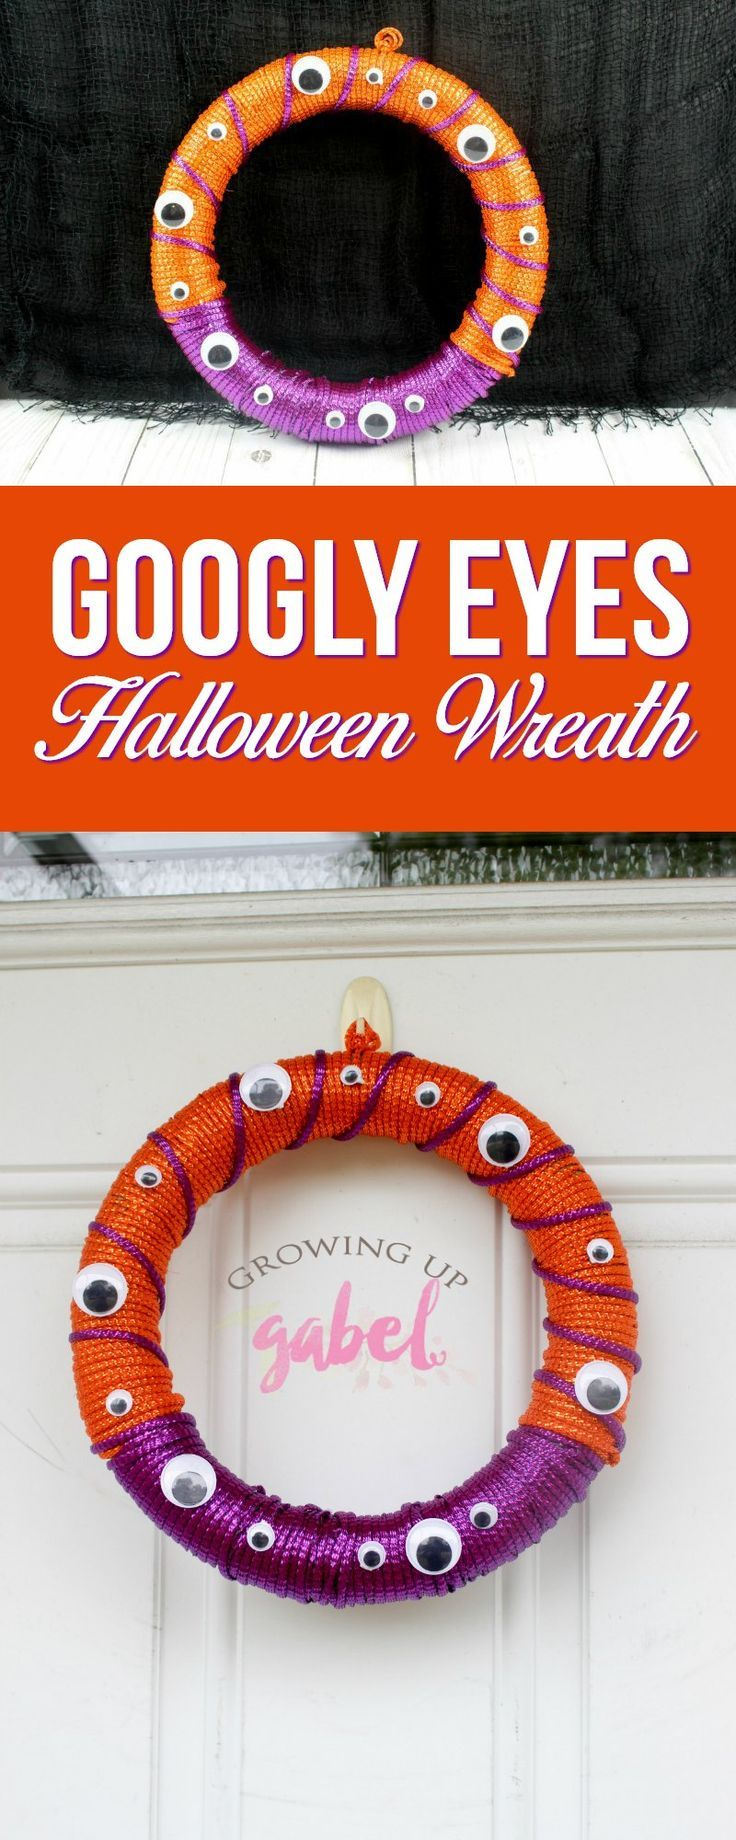 Pin This Adorable Diy Halloween Googly Eyes Wreath Made With Dollar Store Craft Supplies Halloweencrafts H Googly Eye Wreath Googly Eye Crafts Halloween Diy